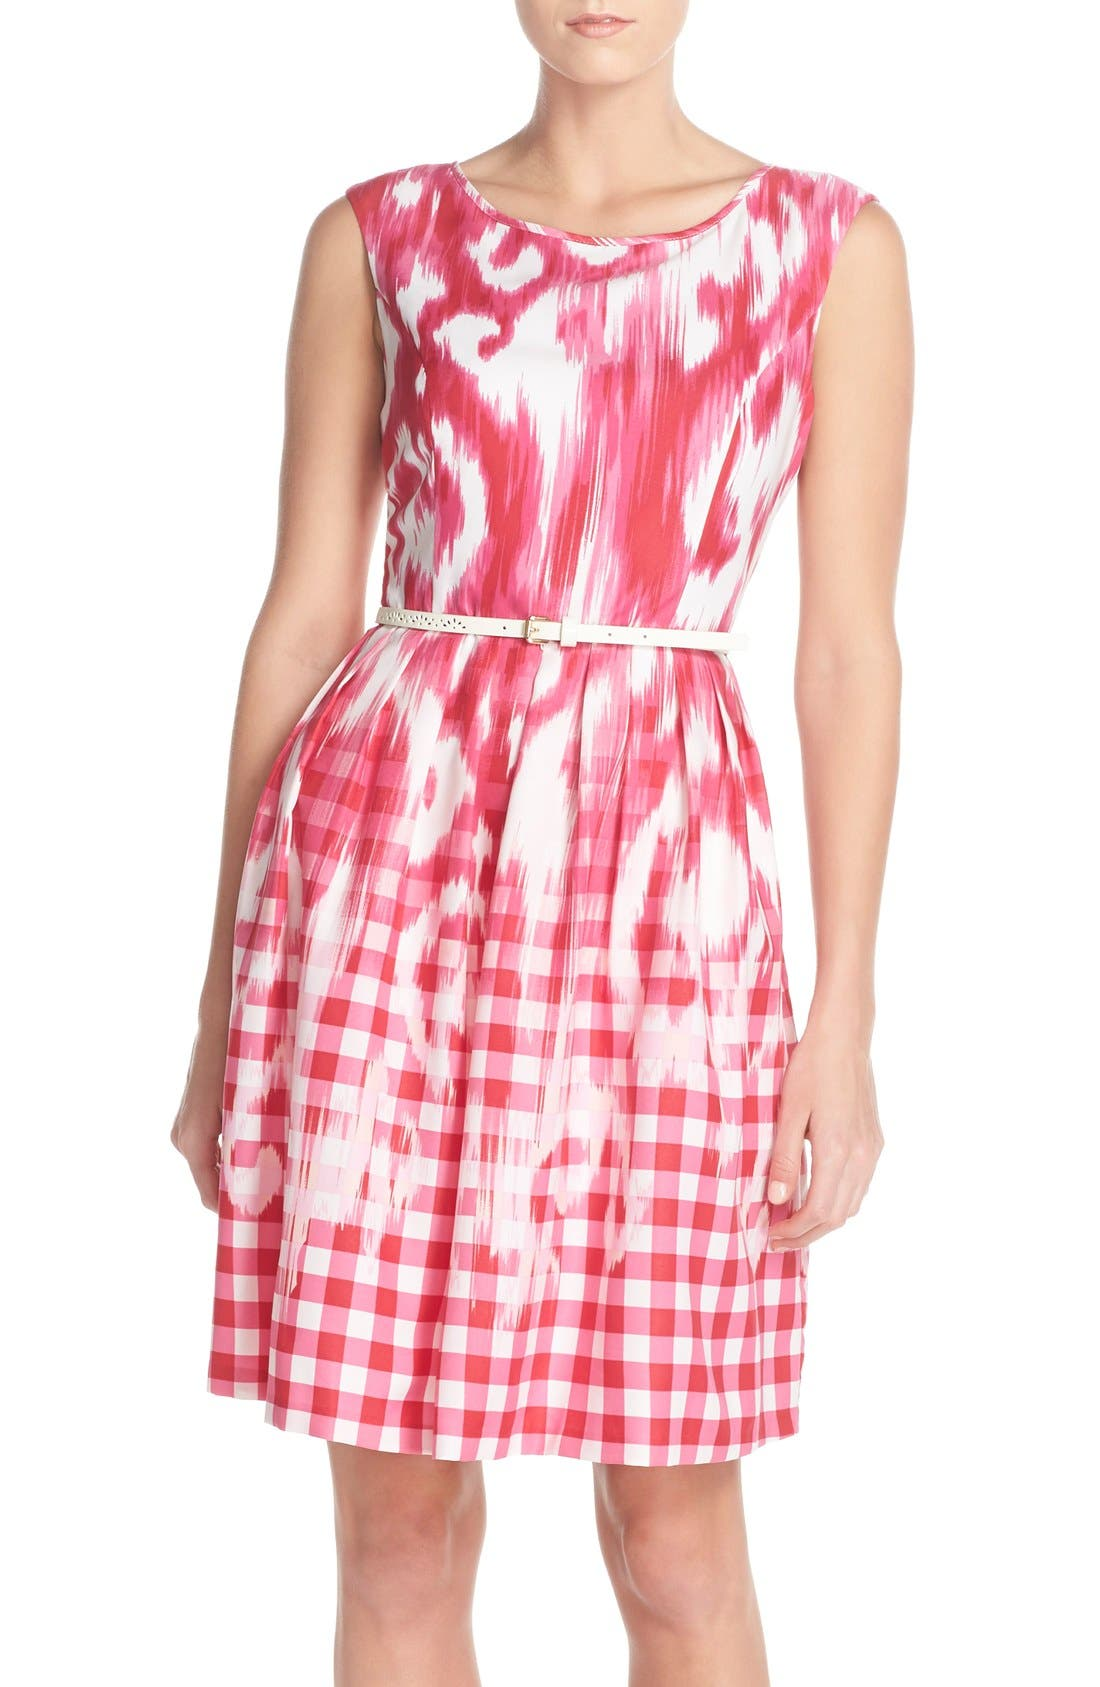 Main Image - Ellen Tracy Belted Mixed Print Faille Fit & Flare Dress (Regular & Petite)